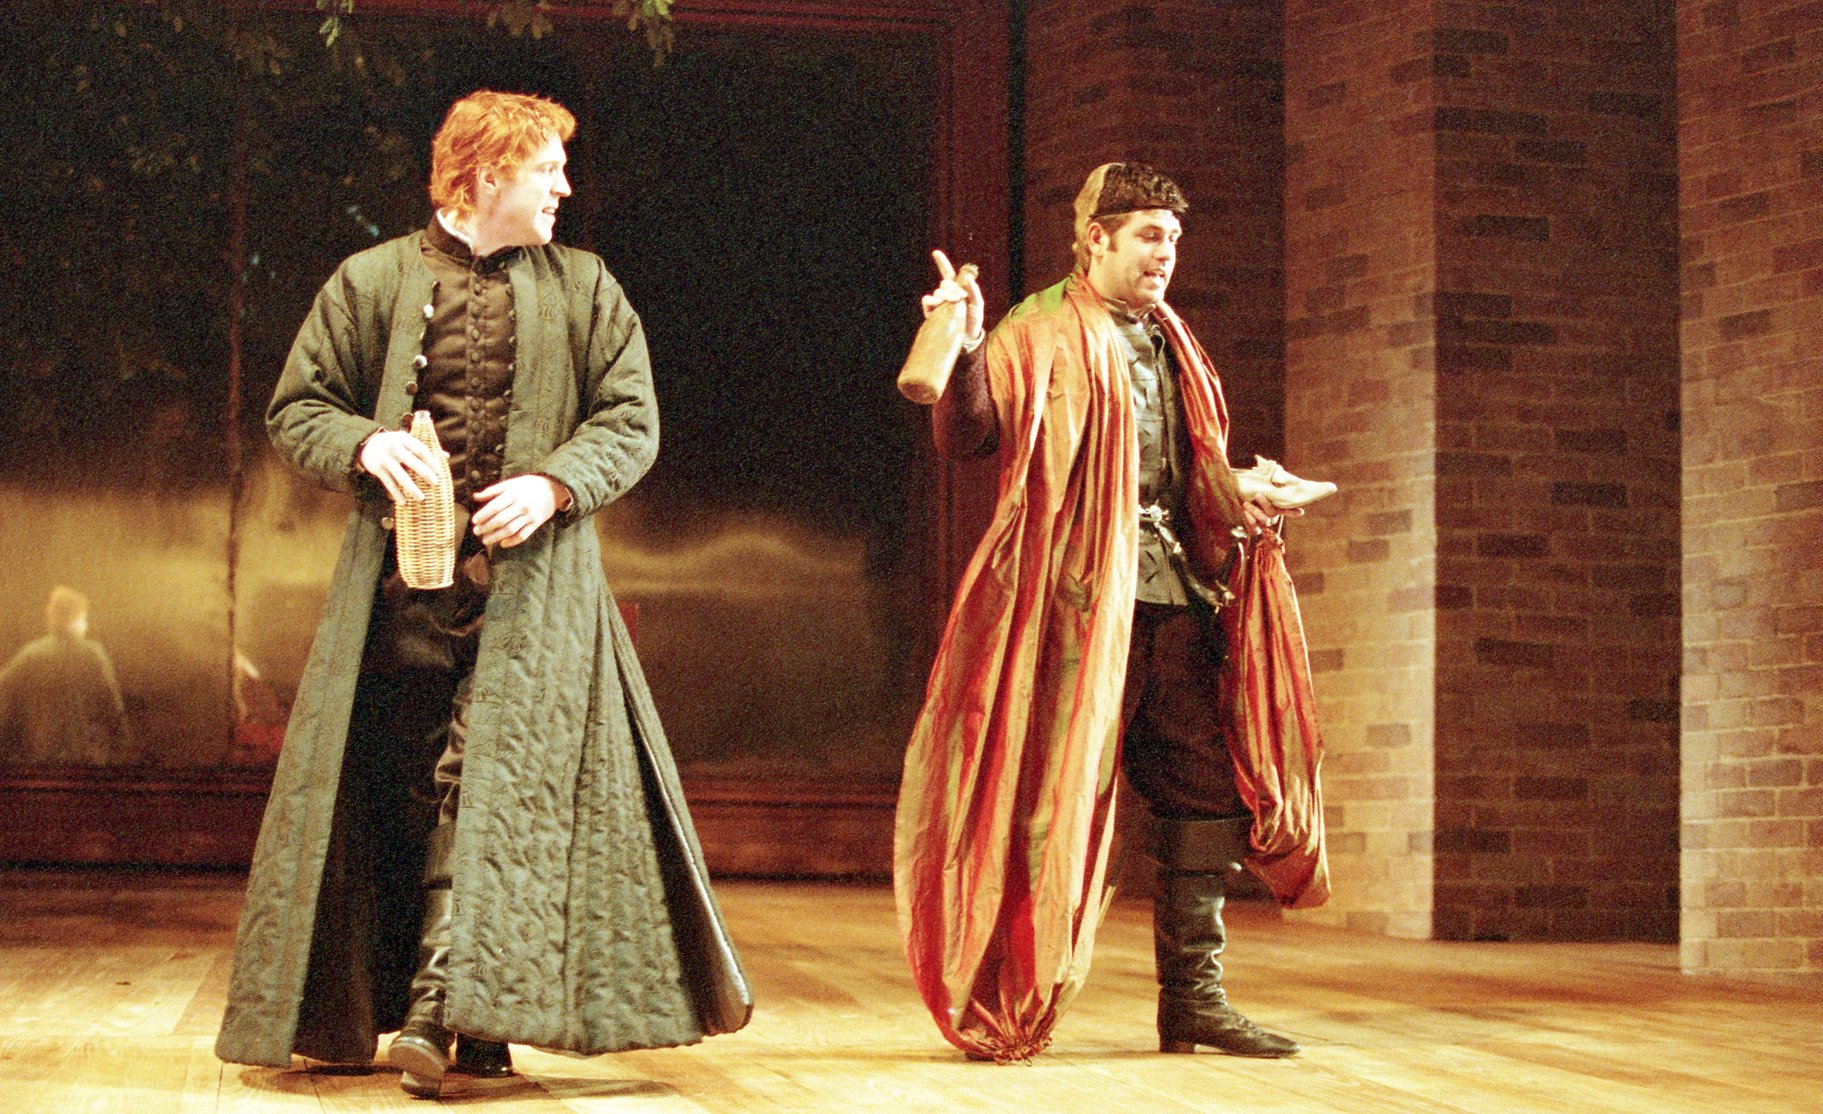 Don John (Damian Lewis) listens to Borachio's (Patrick Baladi) scheme to upset Claudio and Hero's marriage.